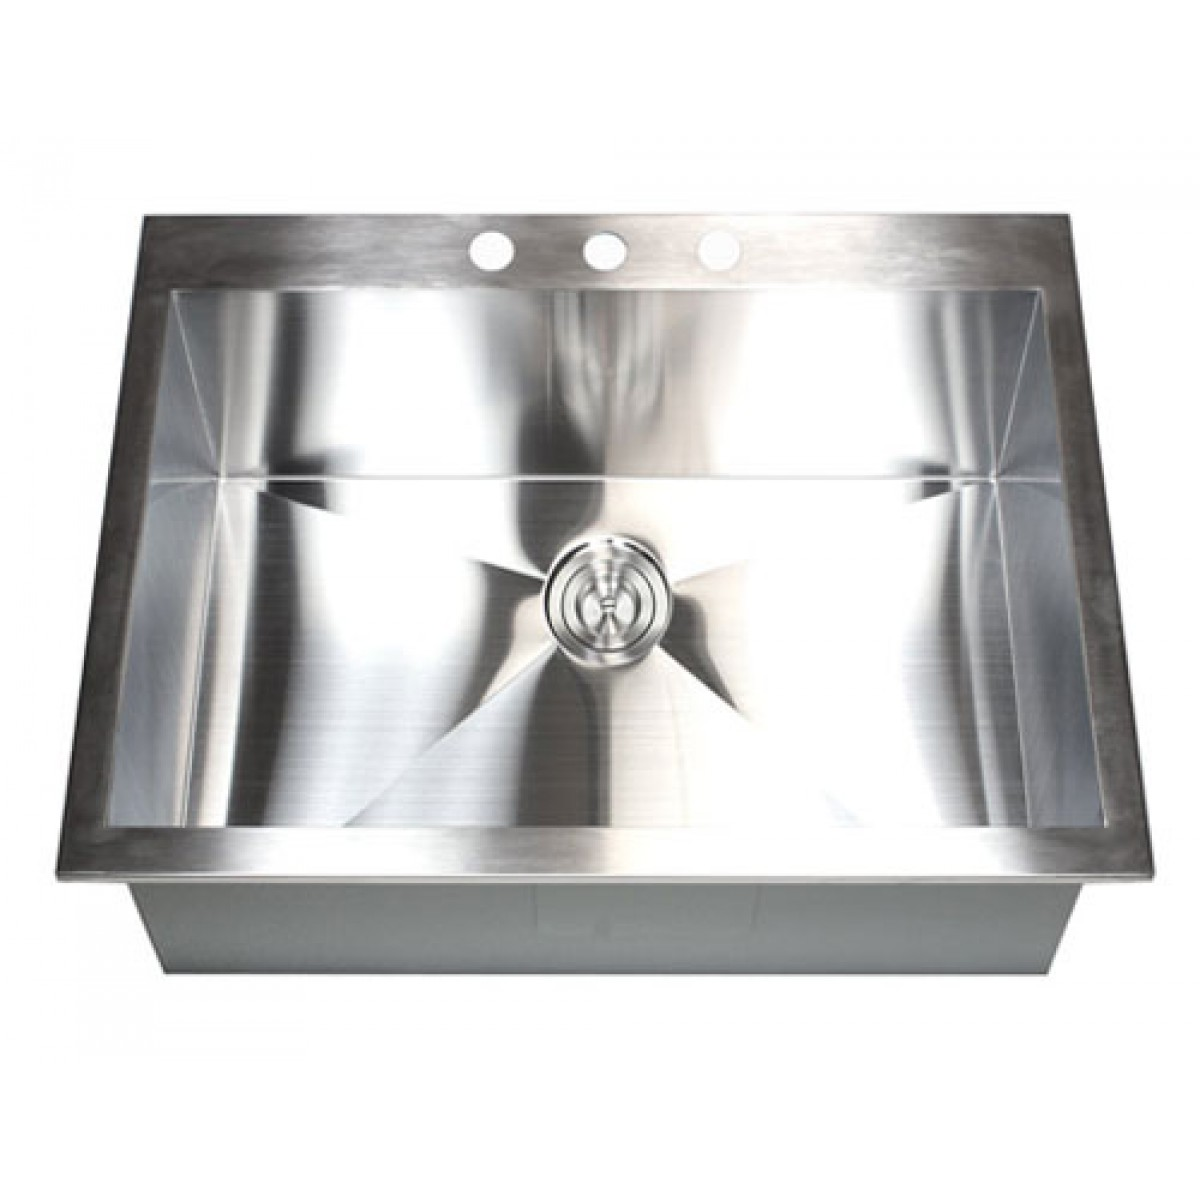 25 Inch Top-Mount / Drop-In Stainless Steel Single Bowl Kitchen ...